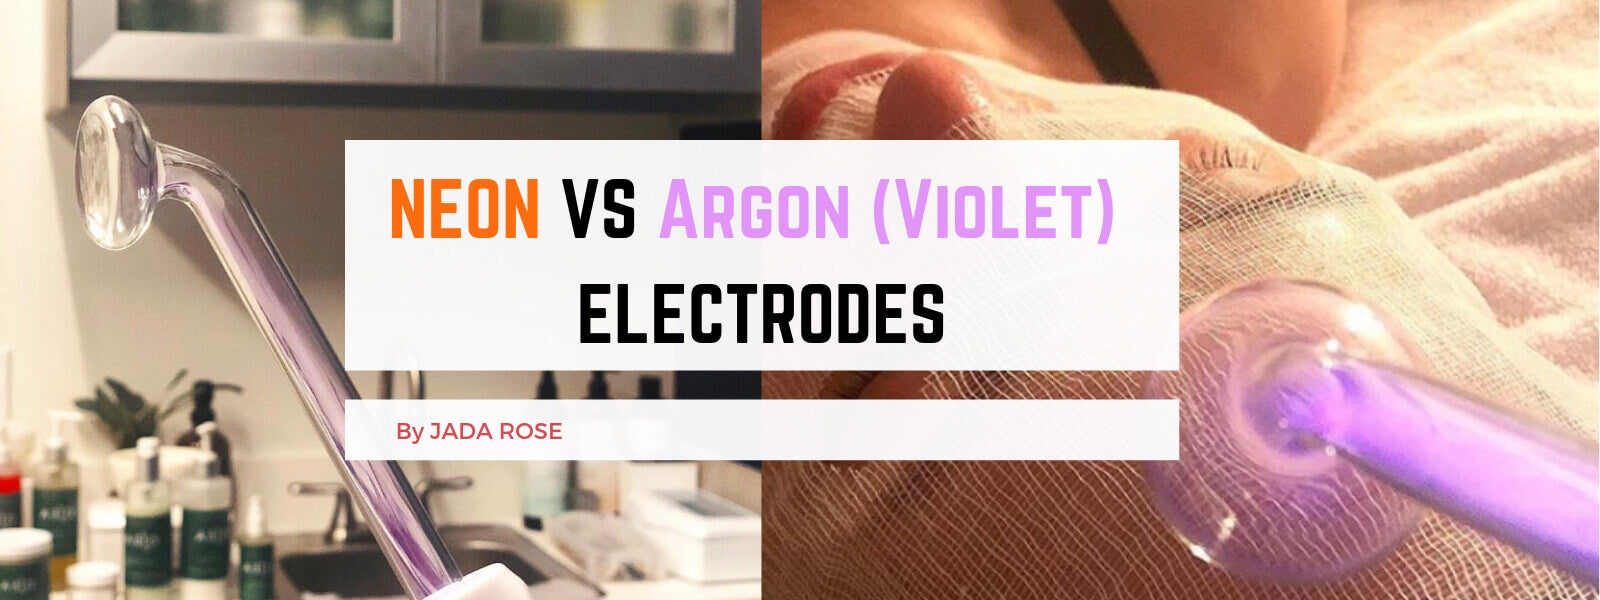 Argon vs Neon High Frequency Electrodes